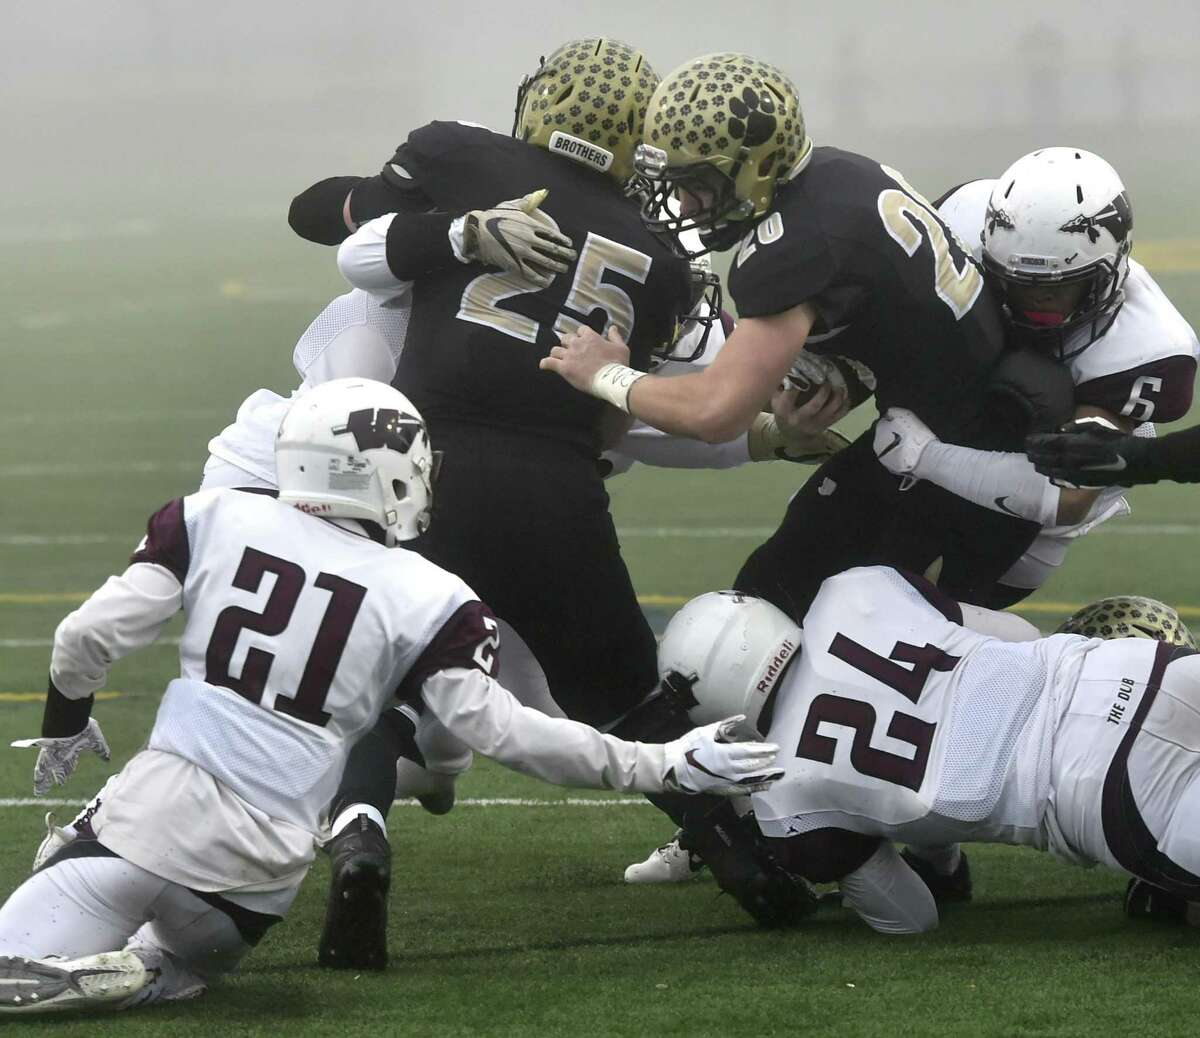 Madison, Connecticut - Sunday, December 2, 2018: #1 Daniel Hand H.S vs. #4 Windsor H.S. during the first quarter of the CIAC Class L Semifinals Sunday afternoon at Strong Field in Madison.